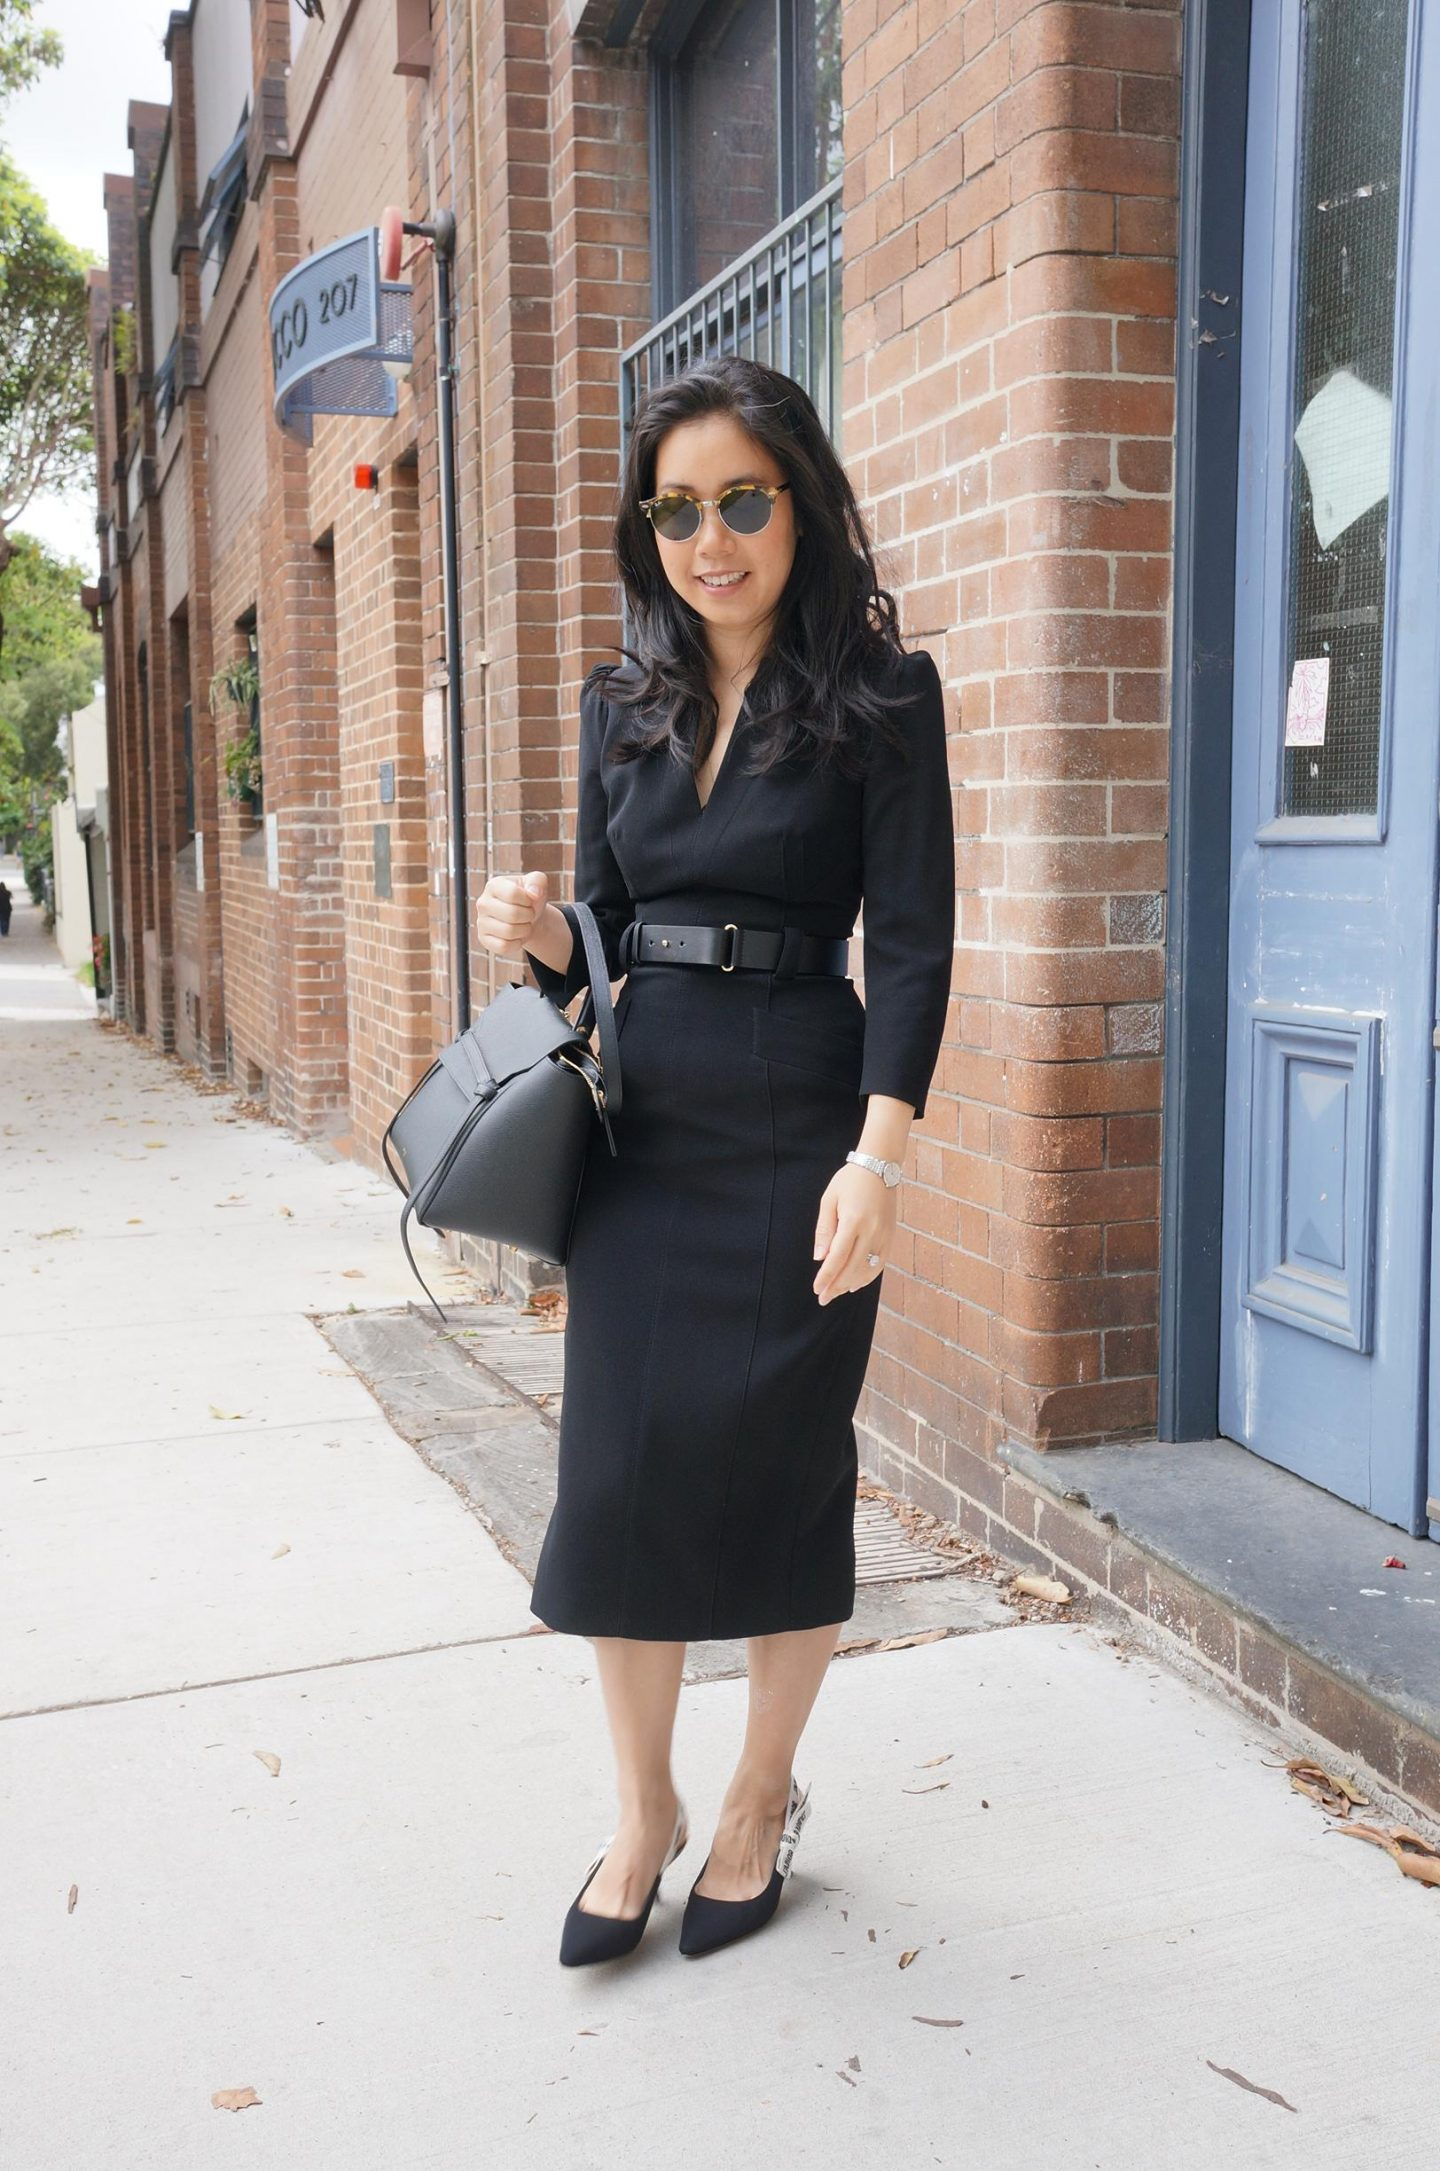 karen millen forever dress styled on petite woman in blog post about best purchases of 2020